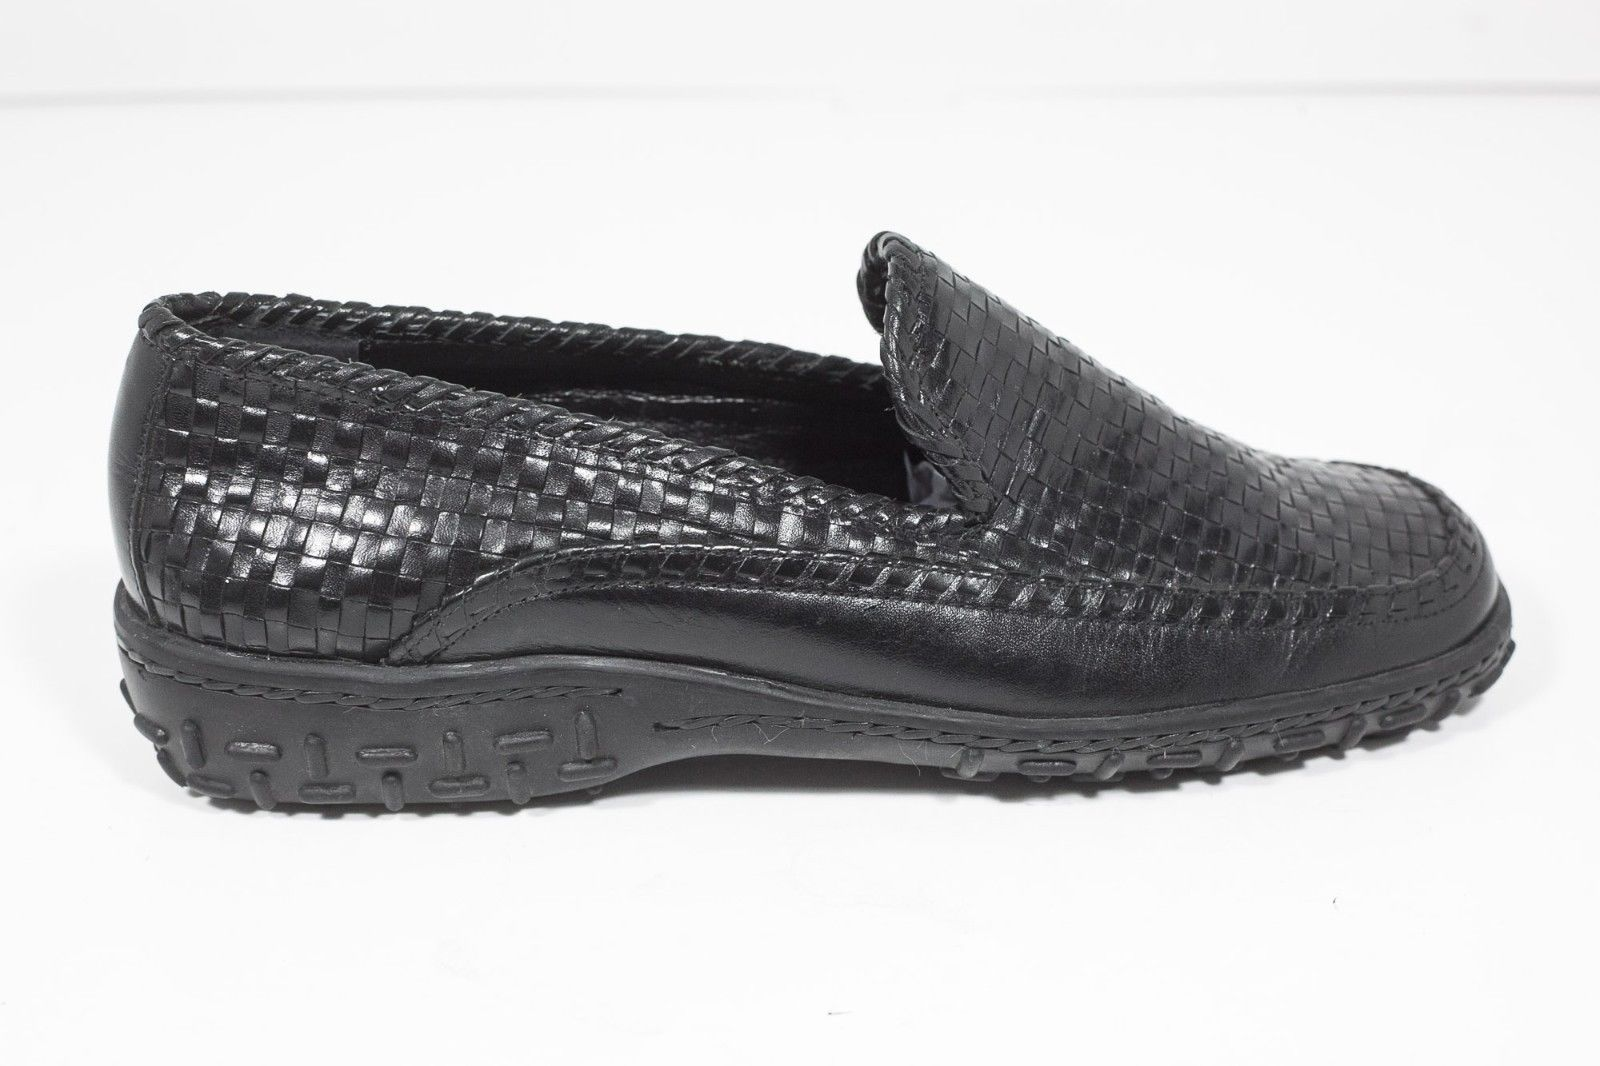 Black Cole Haan Country Woven Weave Loafer Rubber Soles Womens Sz. 7.5 B